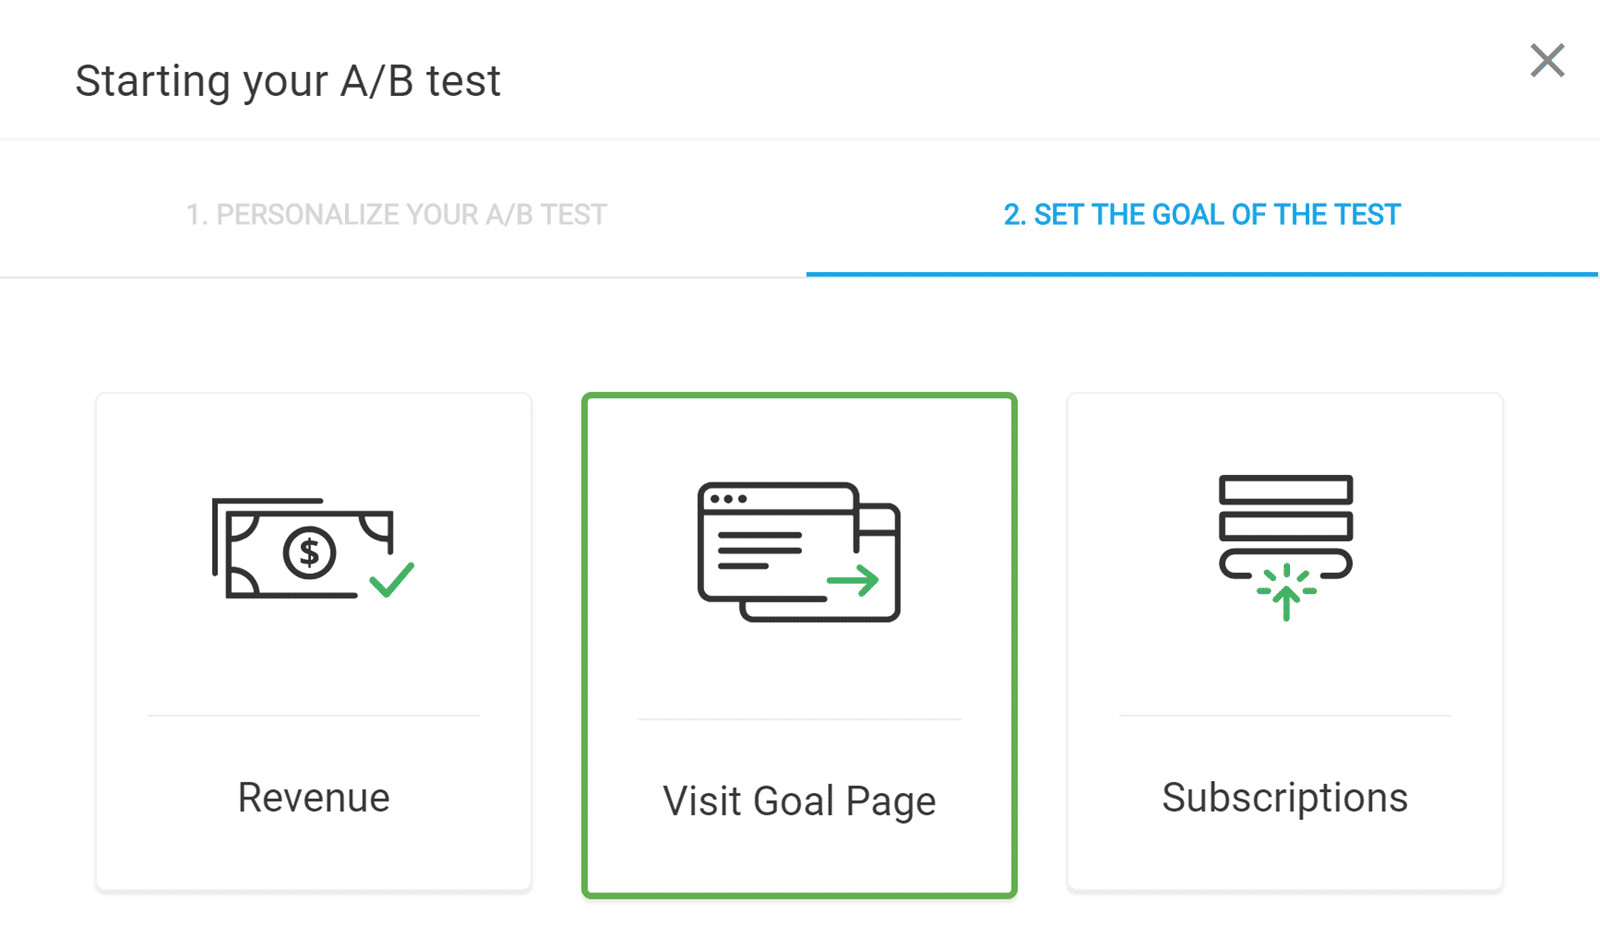 Choose a Goal for the Test